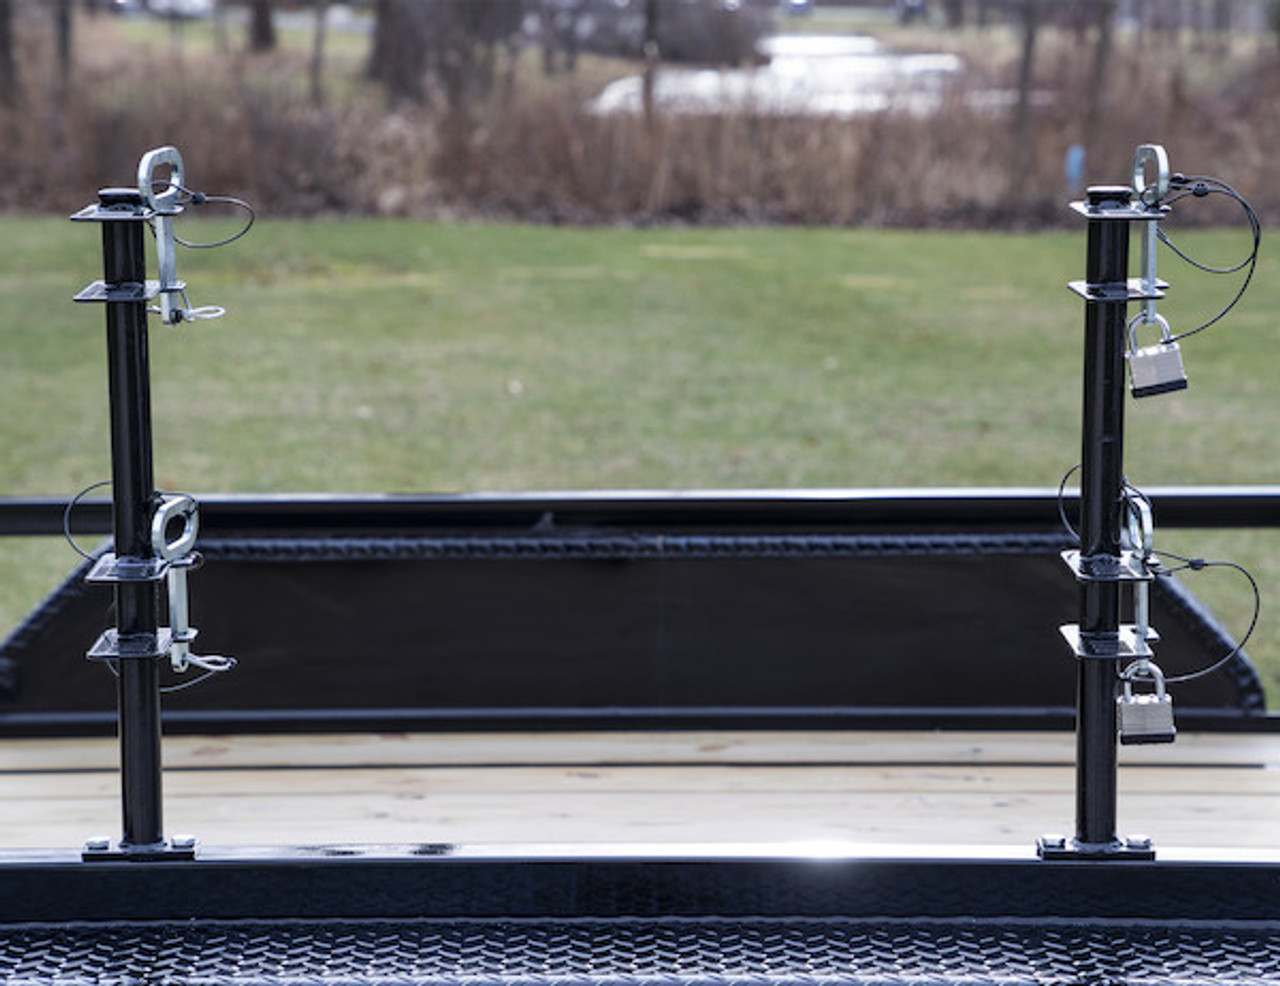 Buyers LT18 Lockable Trimmer Rack Carrier Holder for Up to 2 Trimmers for Trailers and Trucks Picture # 3